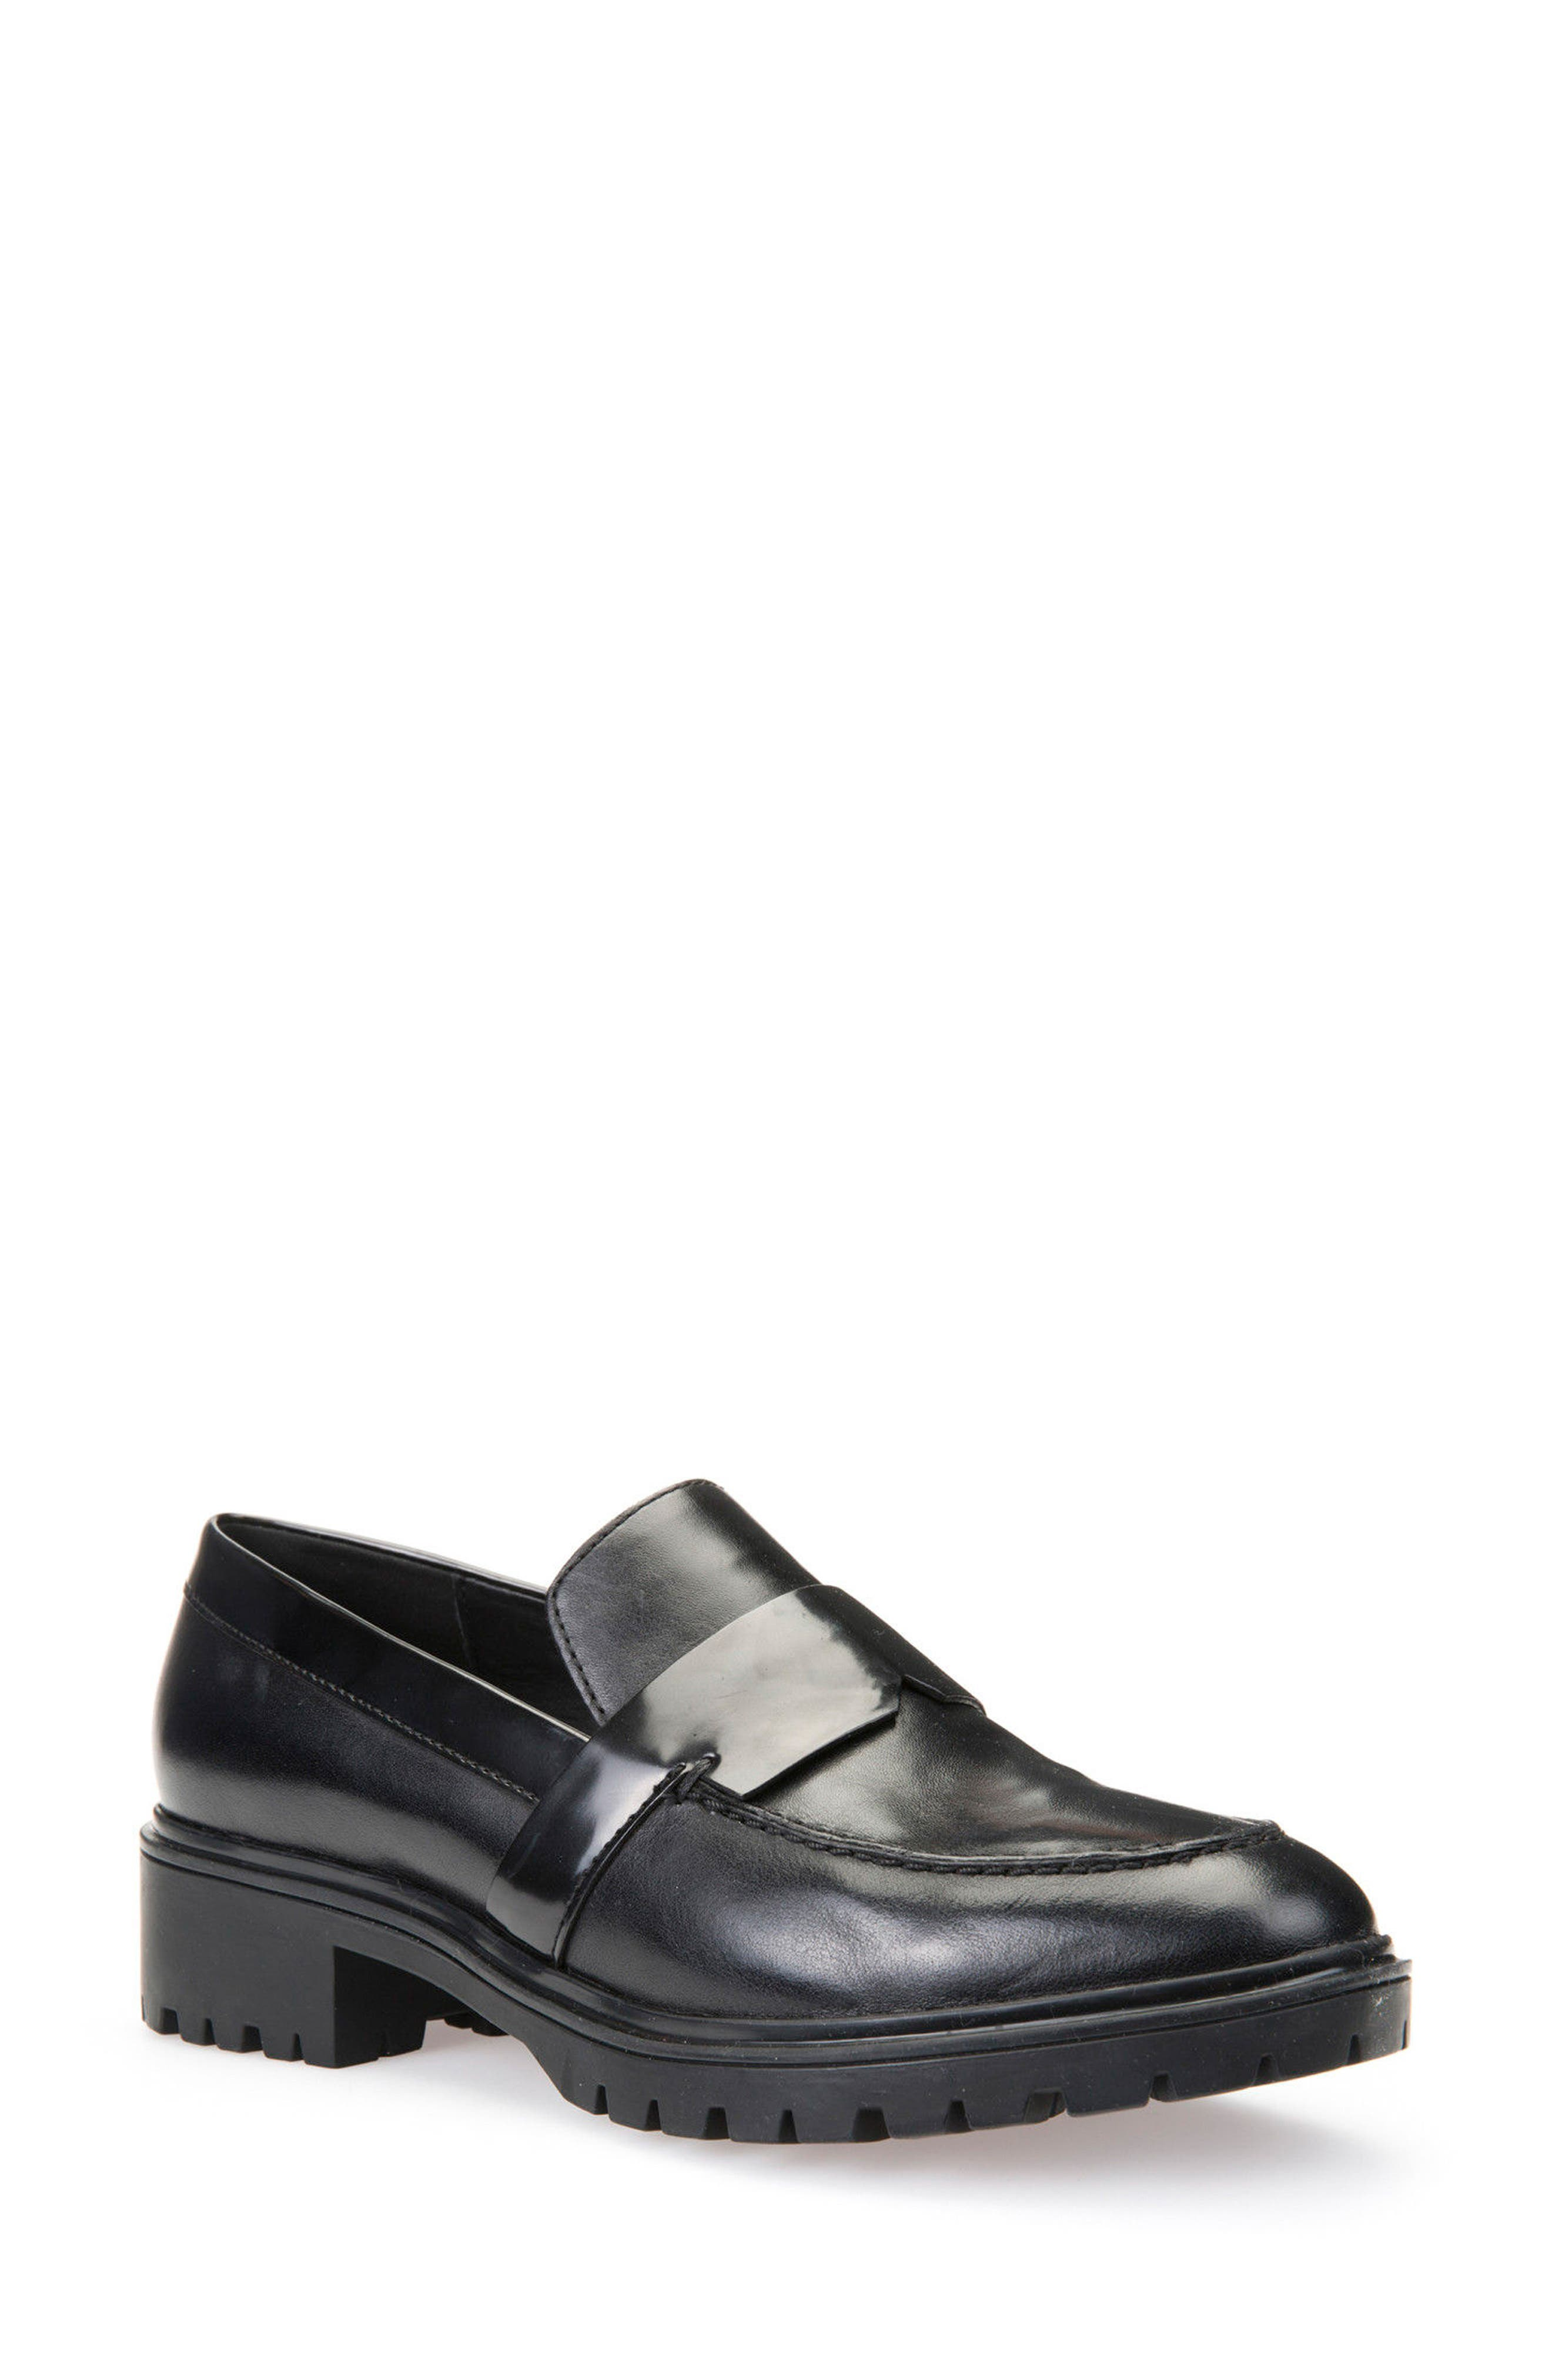 Main Image - Geox Peaceful Loafer Pump (Women)